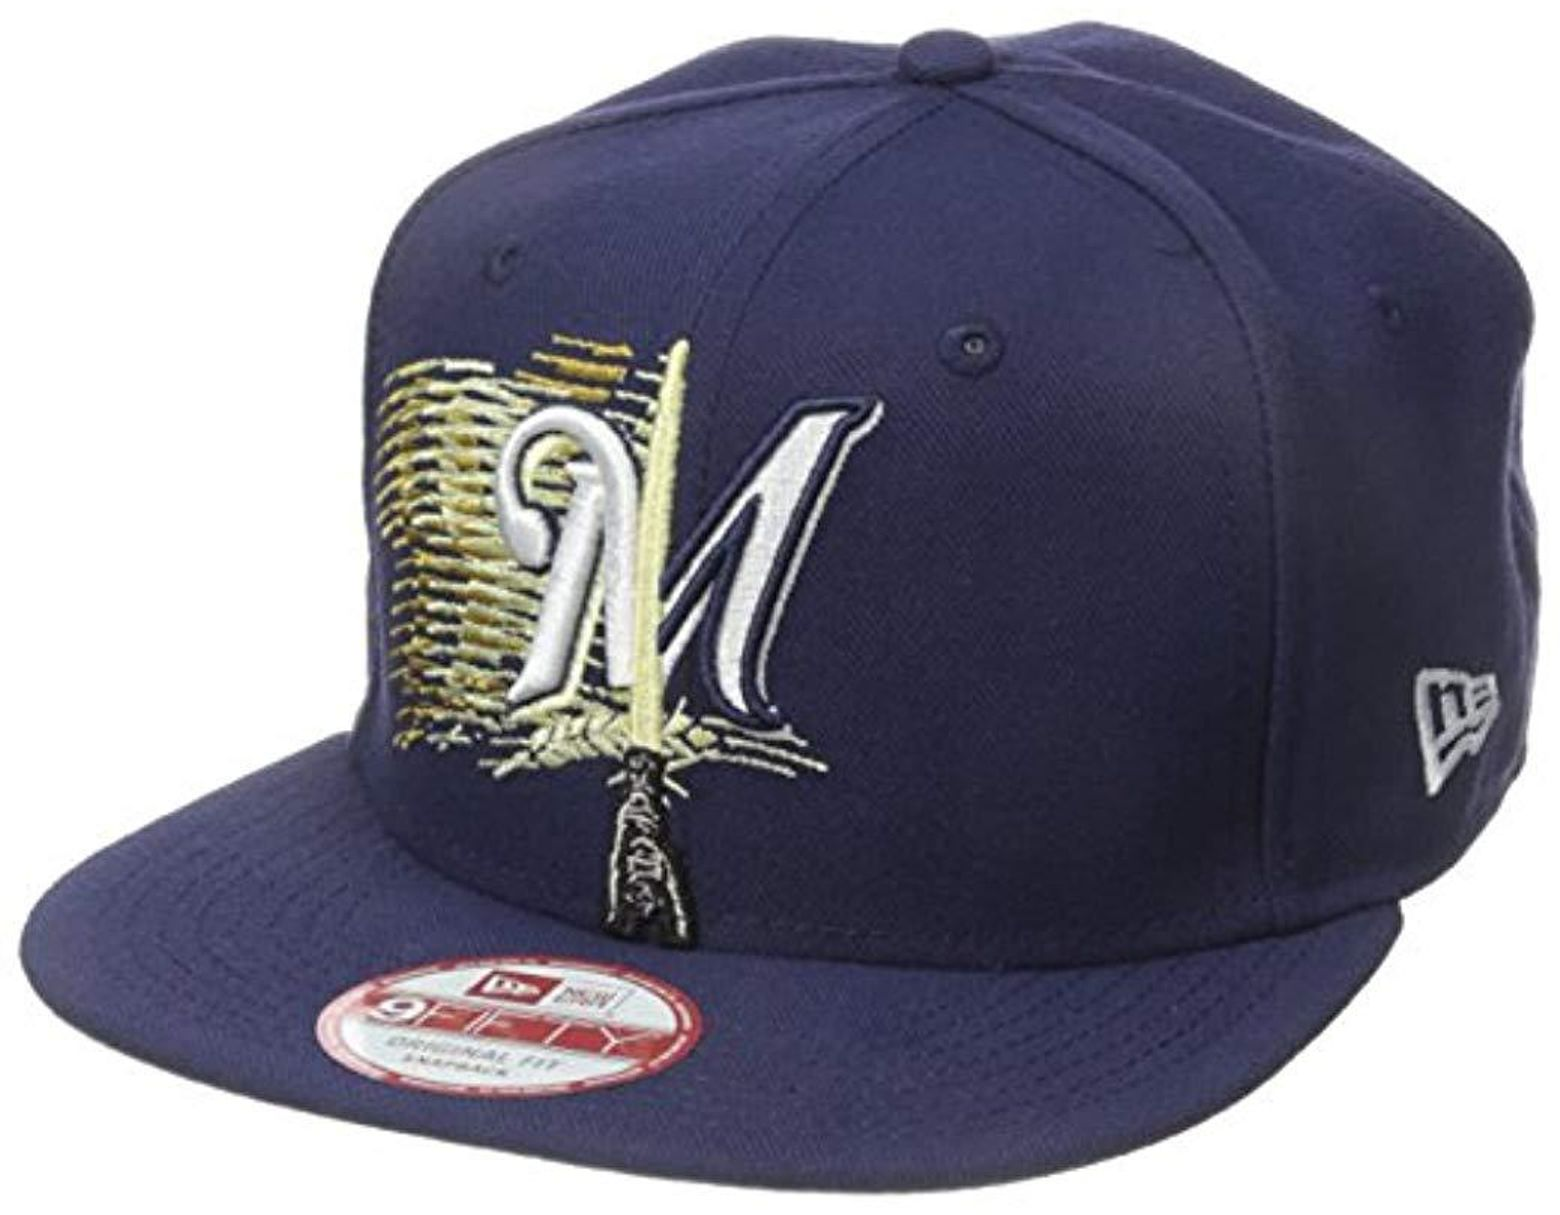 on sale 73f64 6cb49 KTZ Cap Logo Swipe Milwaukee Brewers Star Wars 9fifty Snapback Cap, Black, One  Size in Black for Men - Lyst